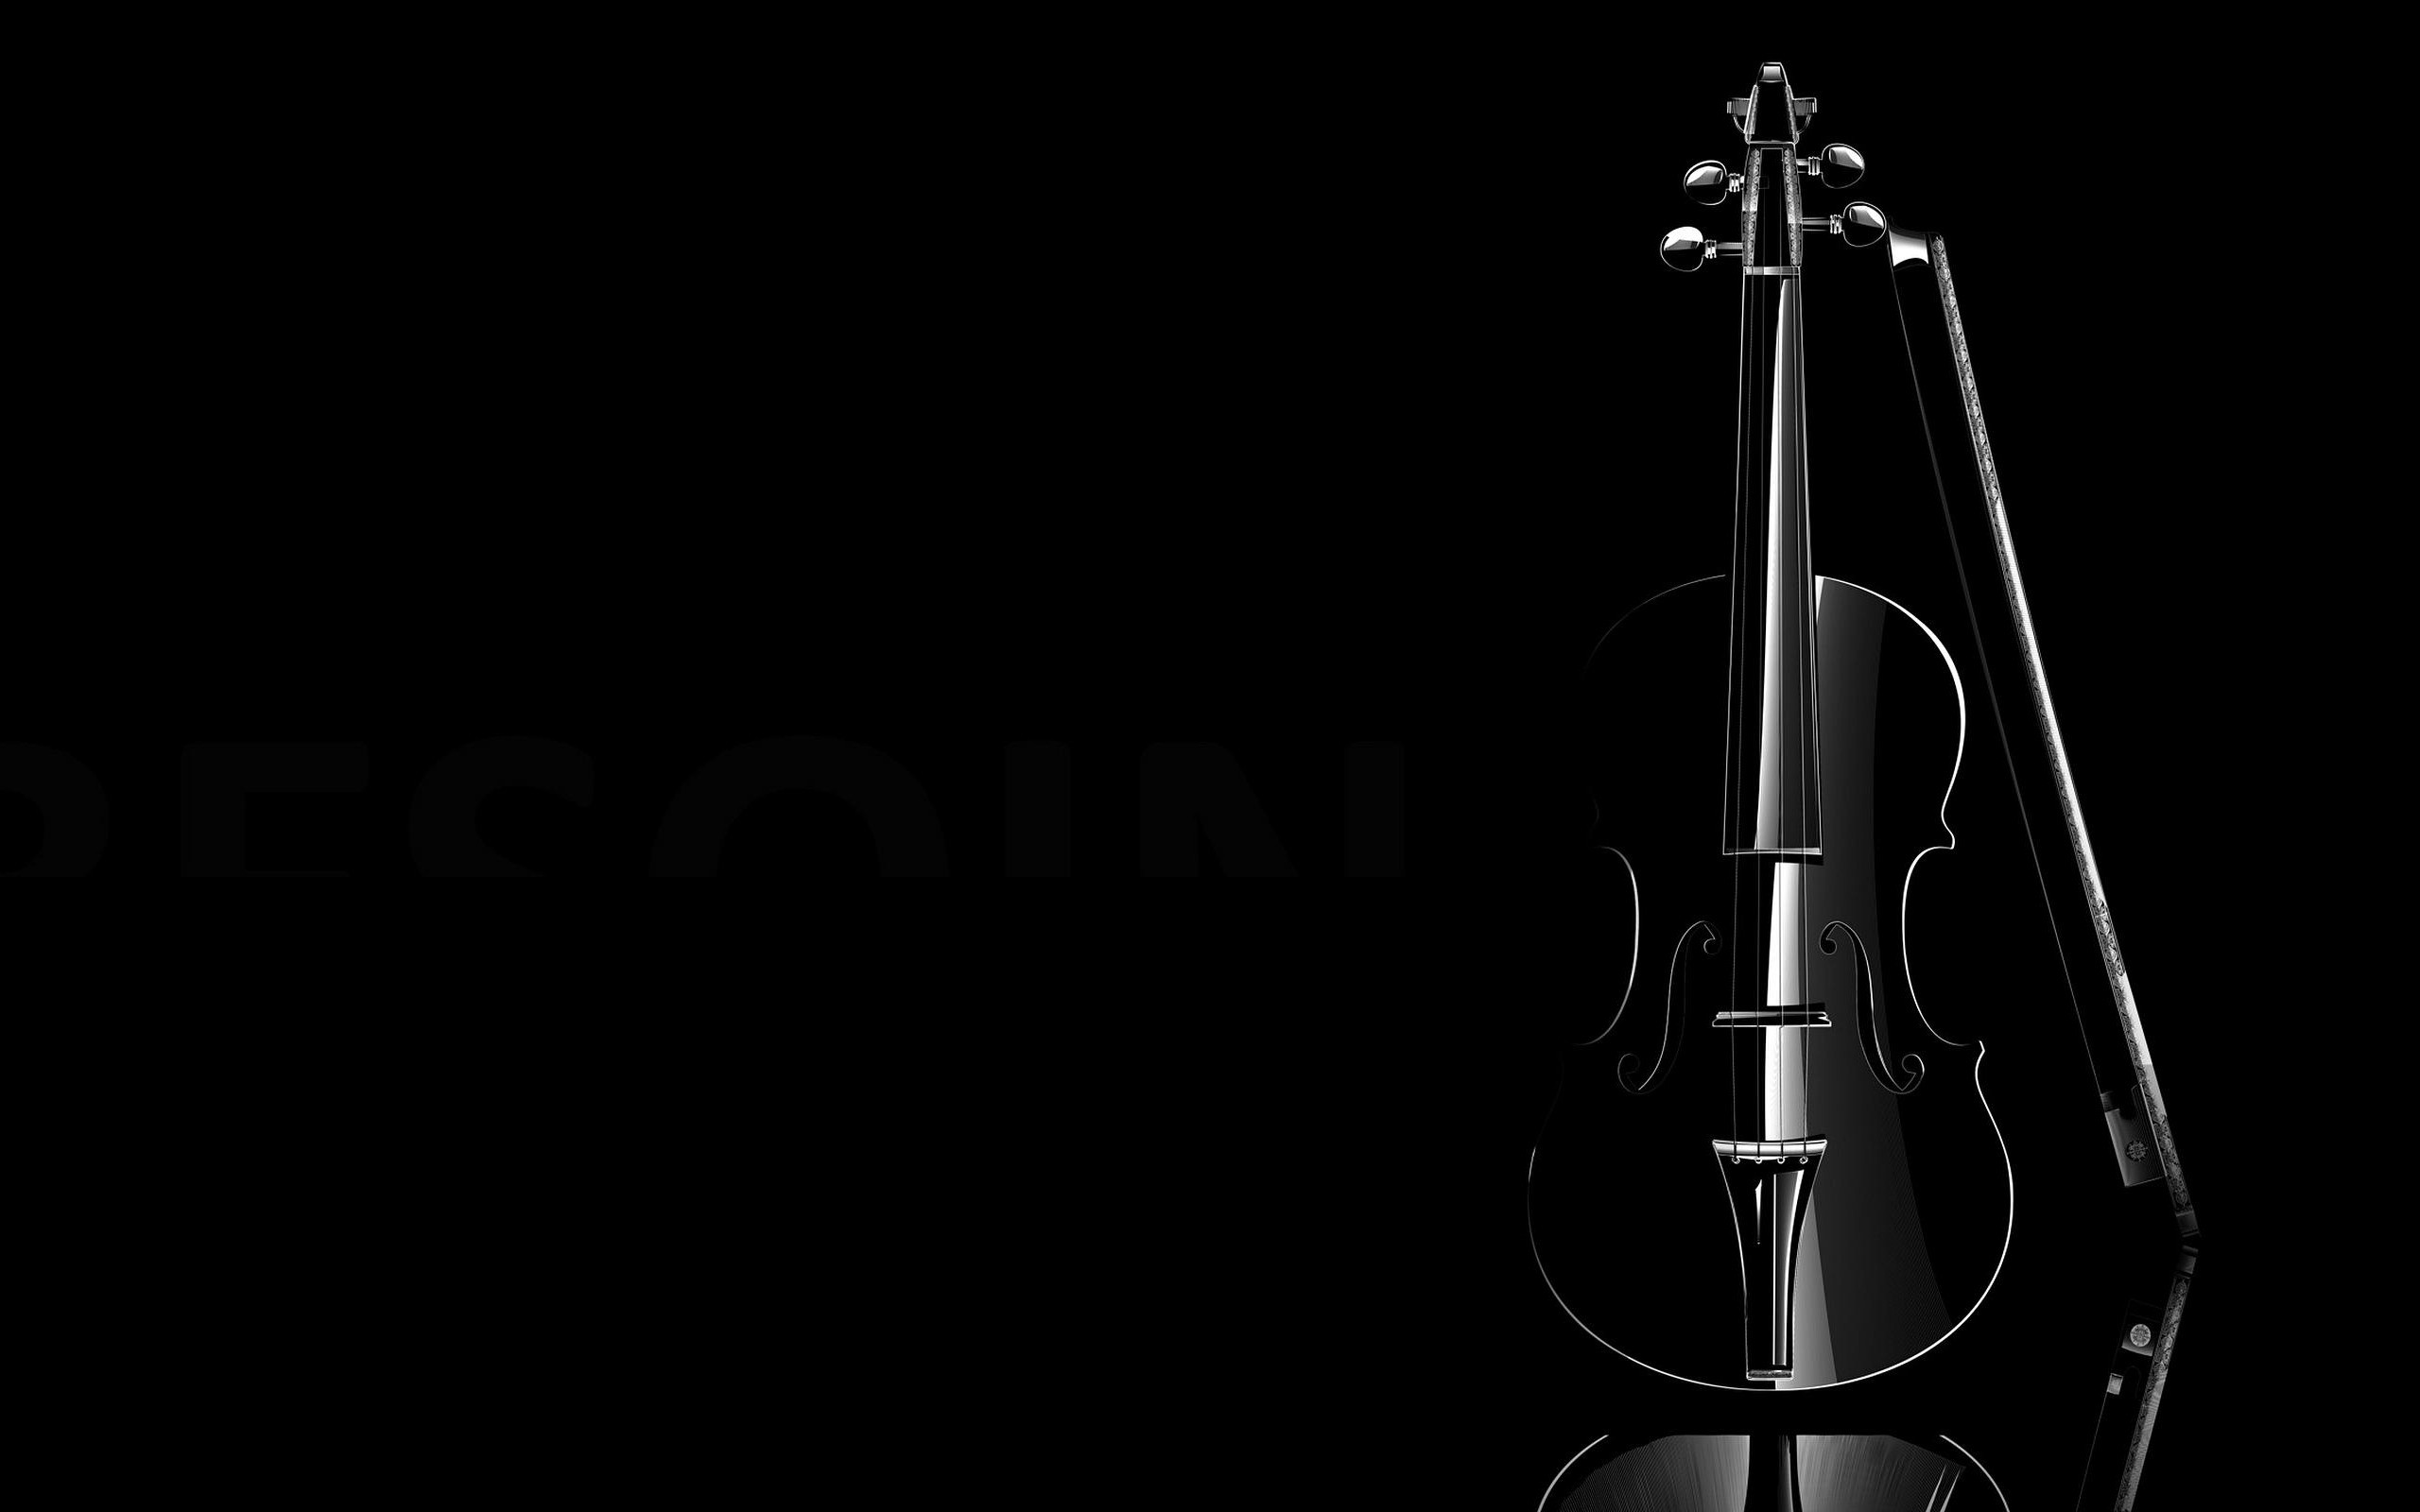 Violins Black Image Wallpaper